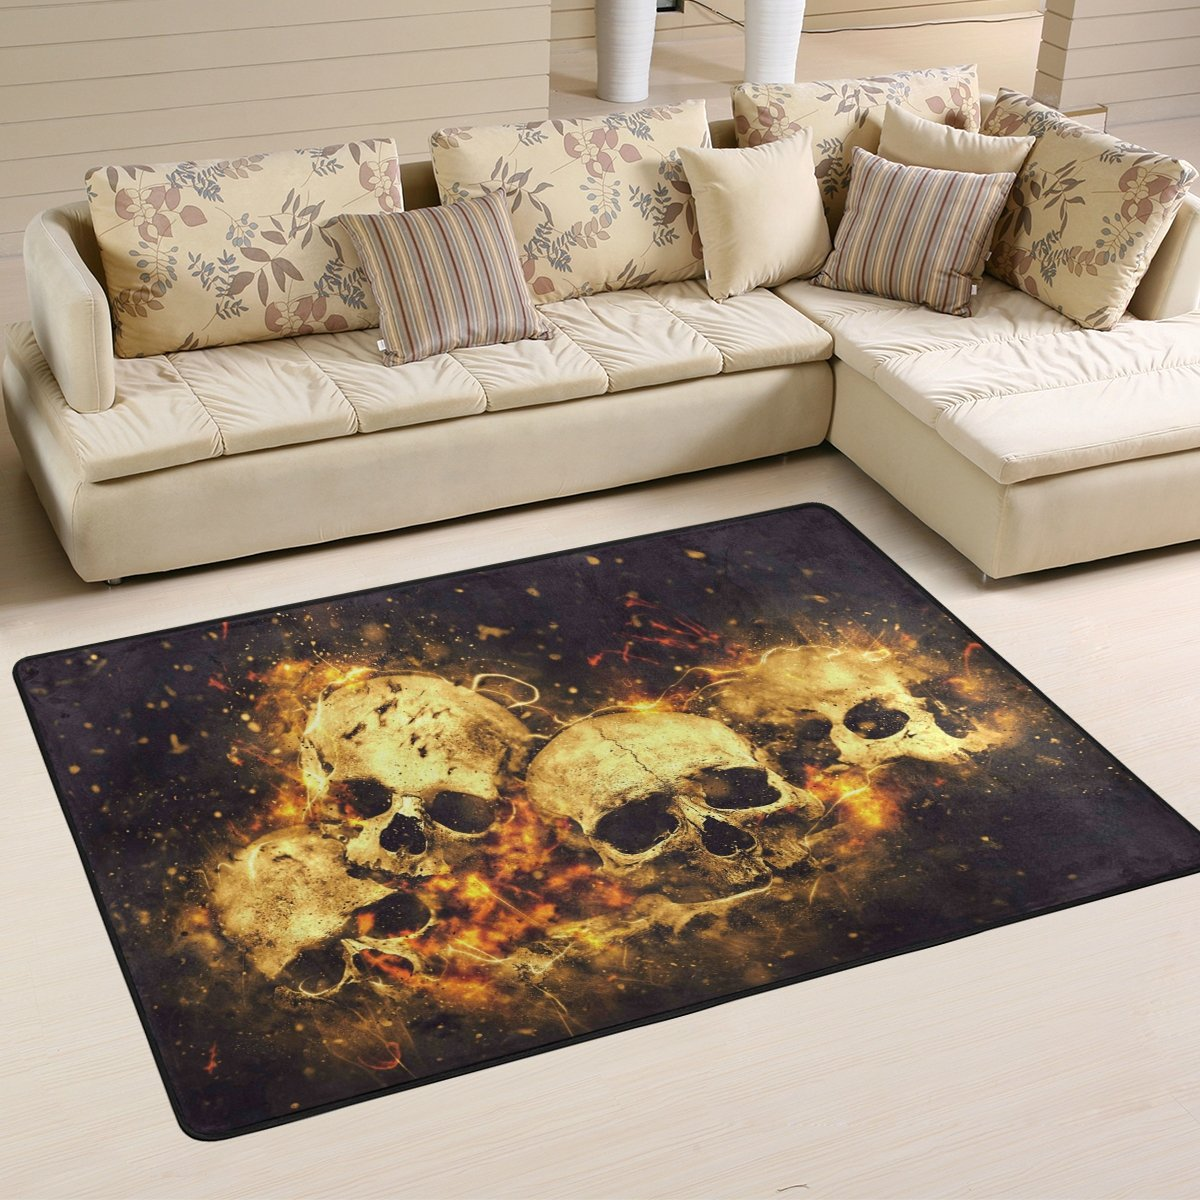 SAVSV 3' x 2' Area Rug Carpet Doormat Lightweight Printed Skulls And Bones Easy to Clean For Living Room Bedroom